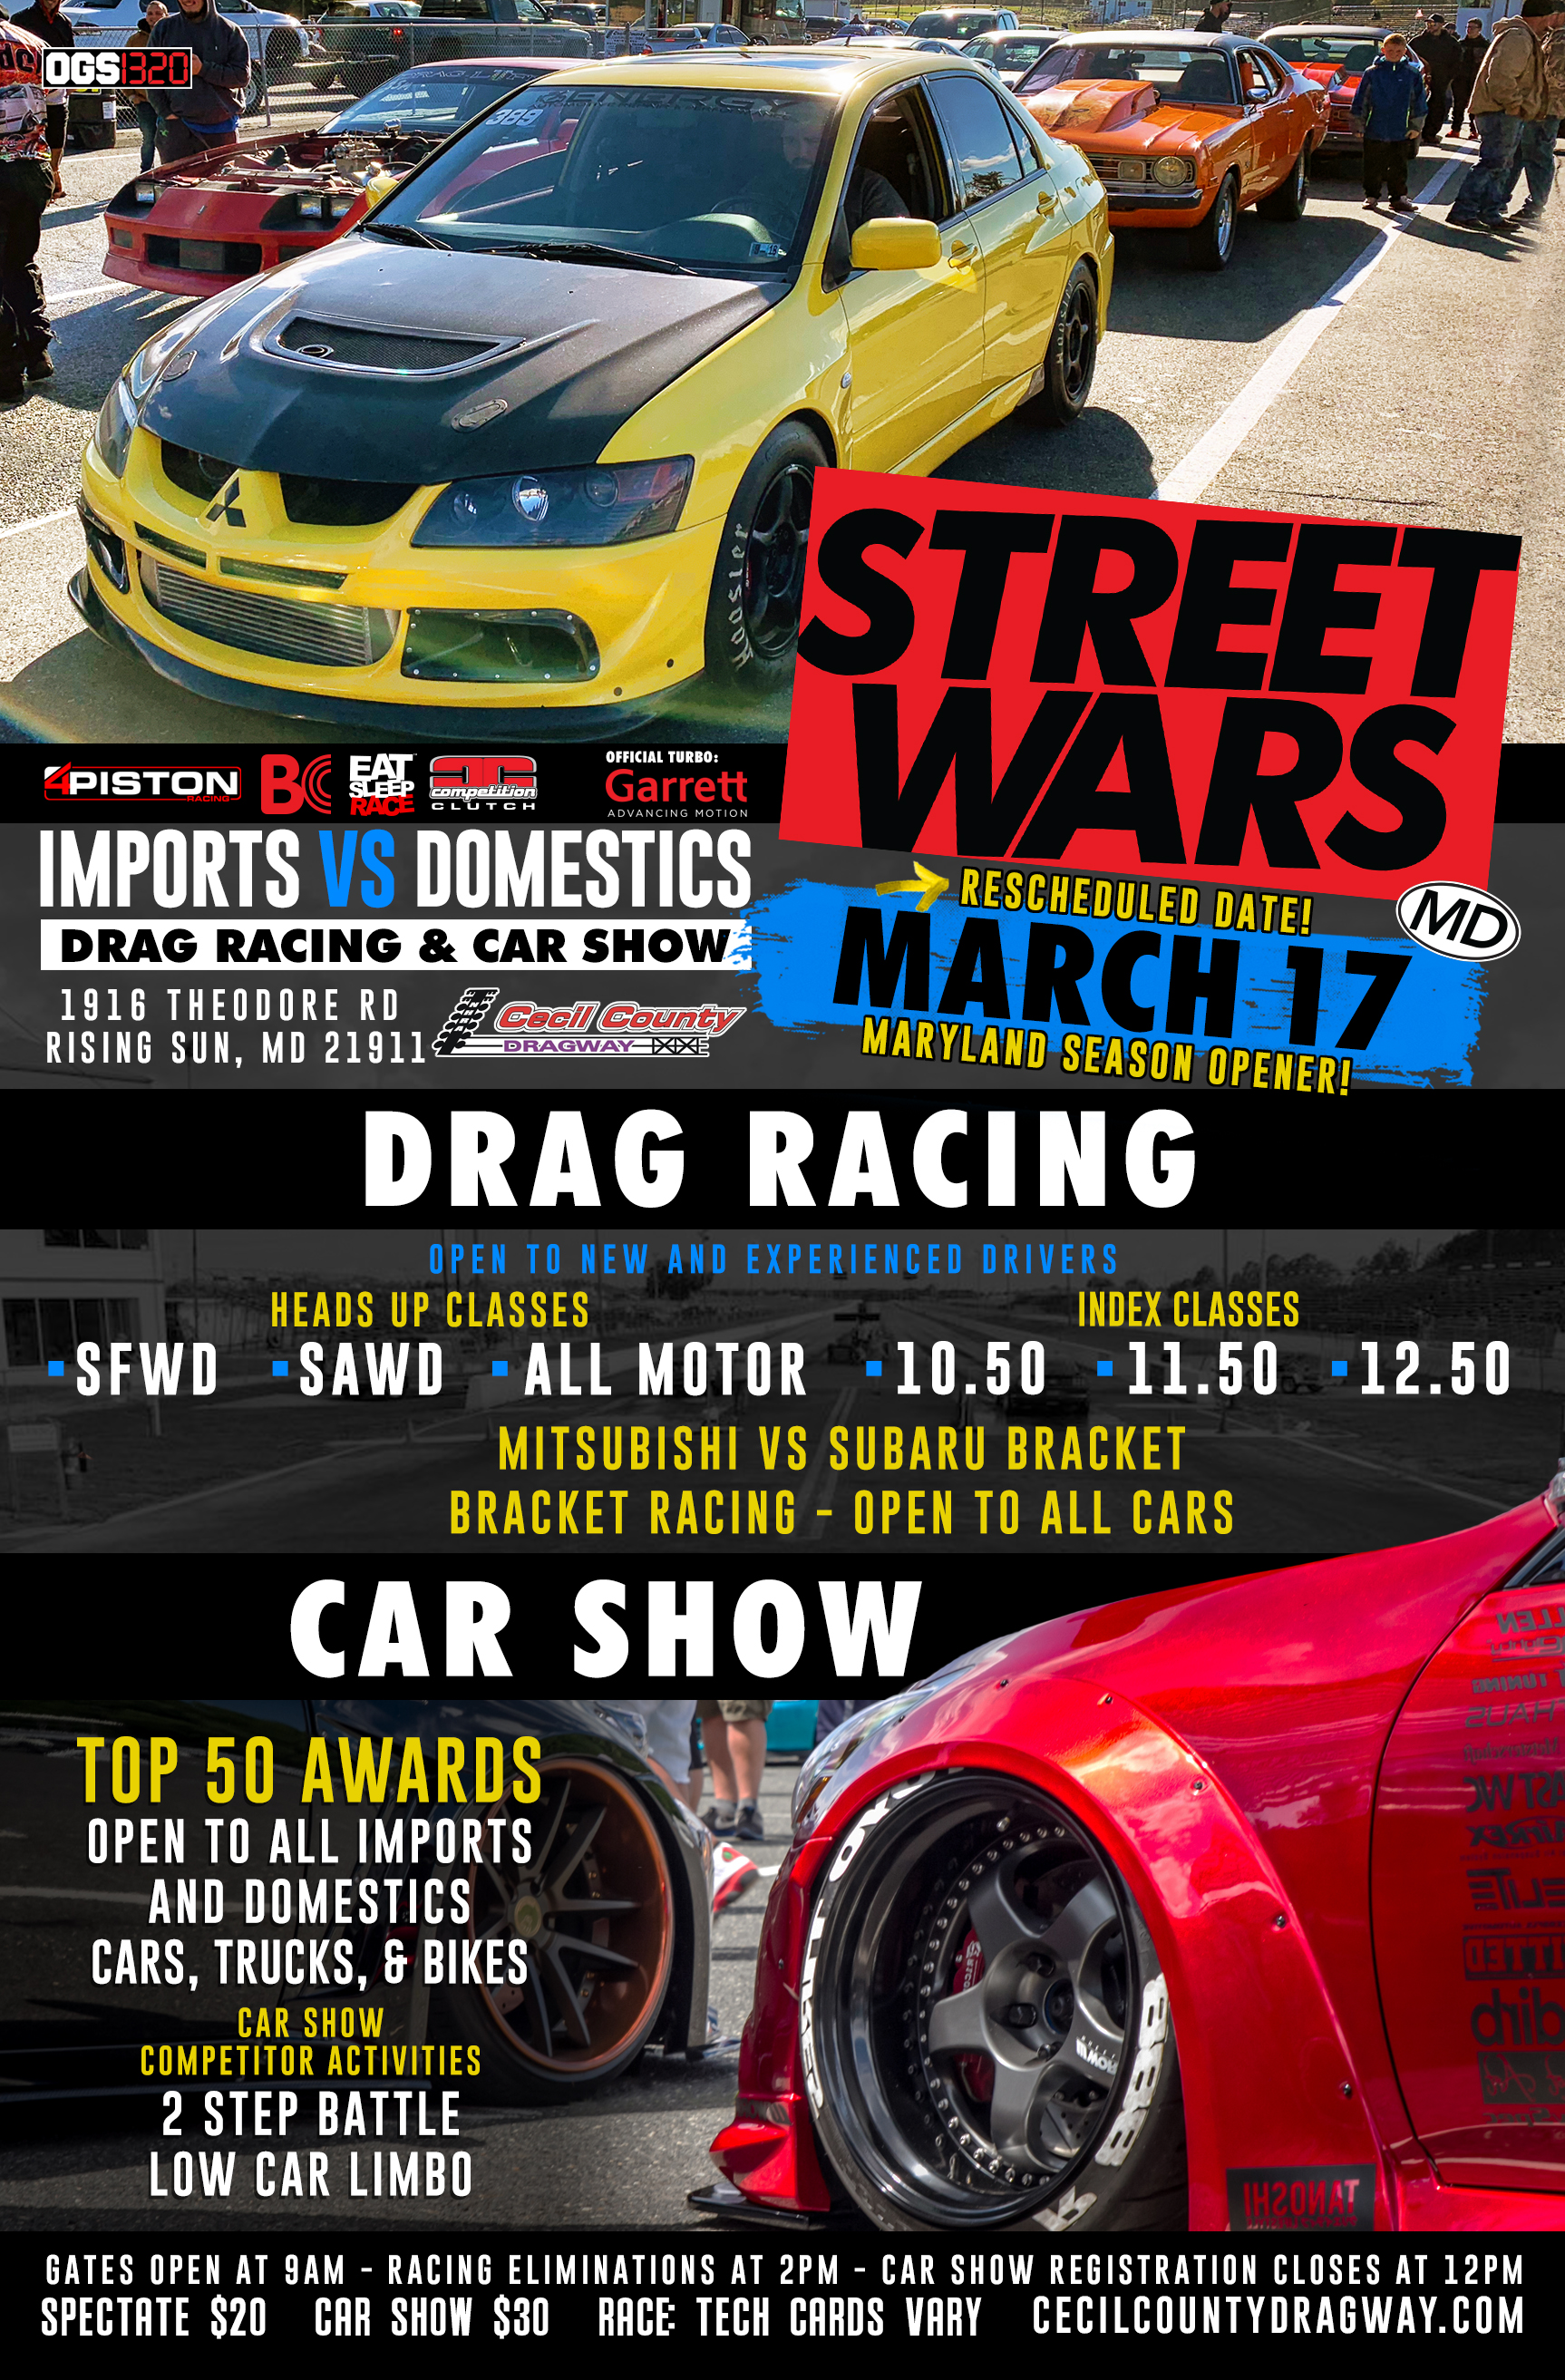 streetwars_MD_Mar2019_web_rescheduled